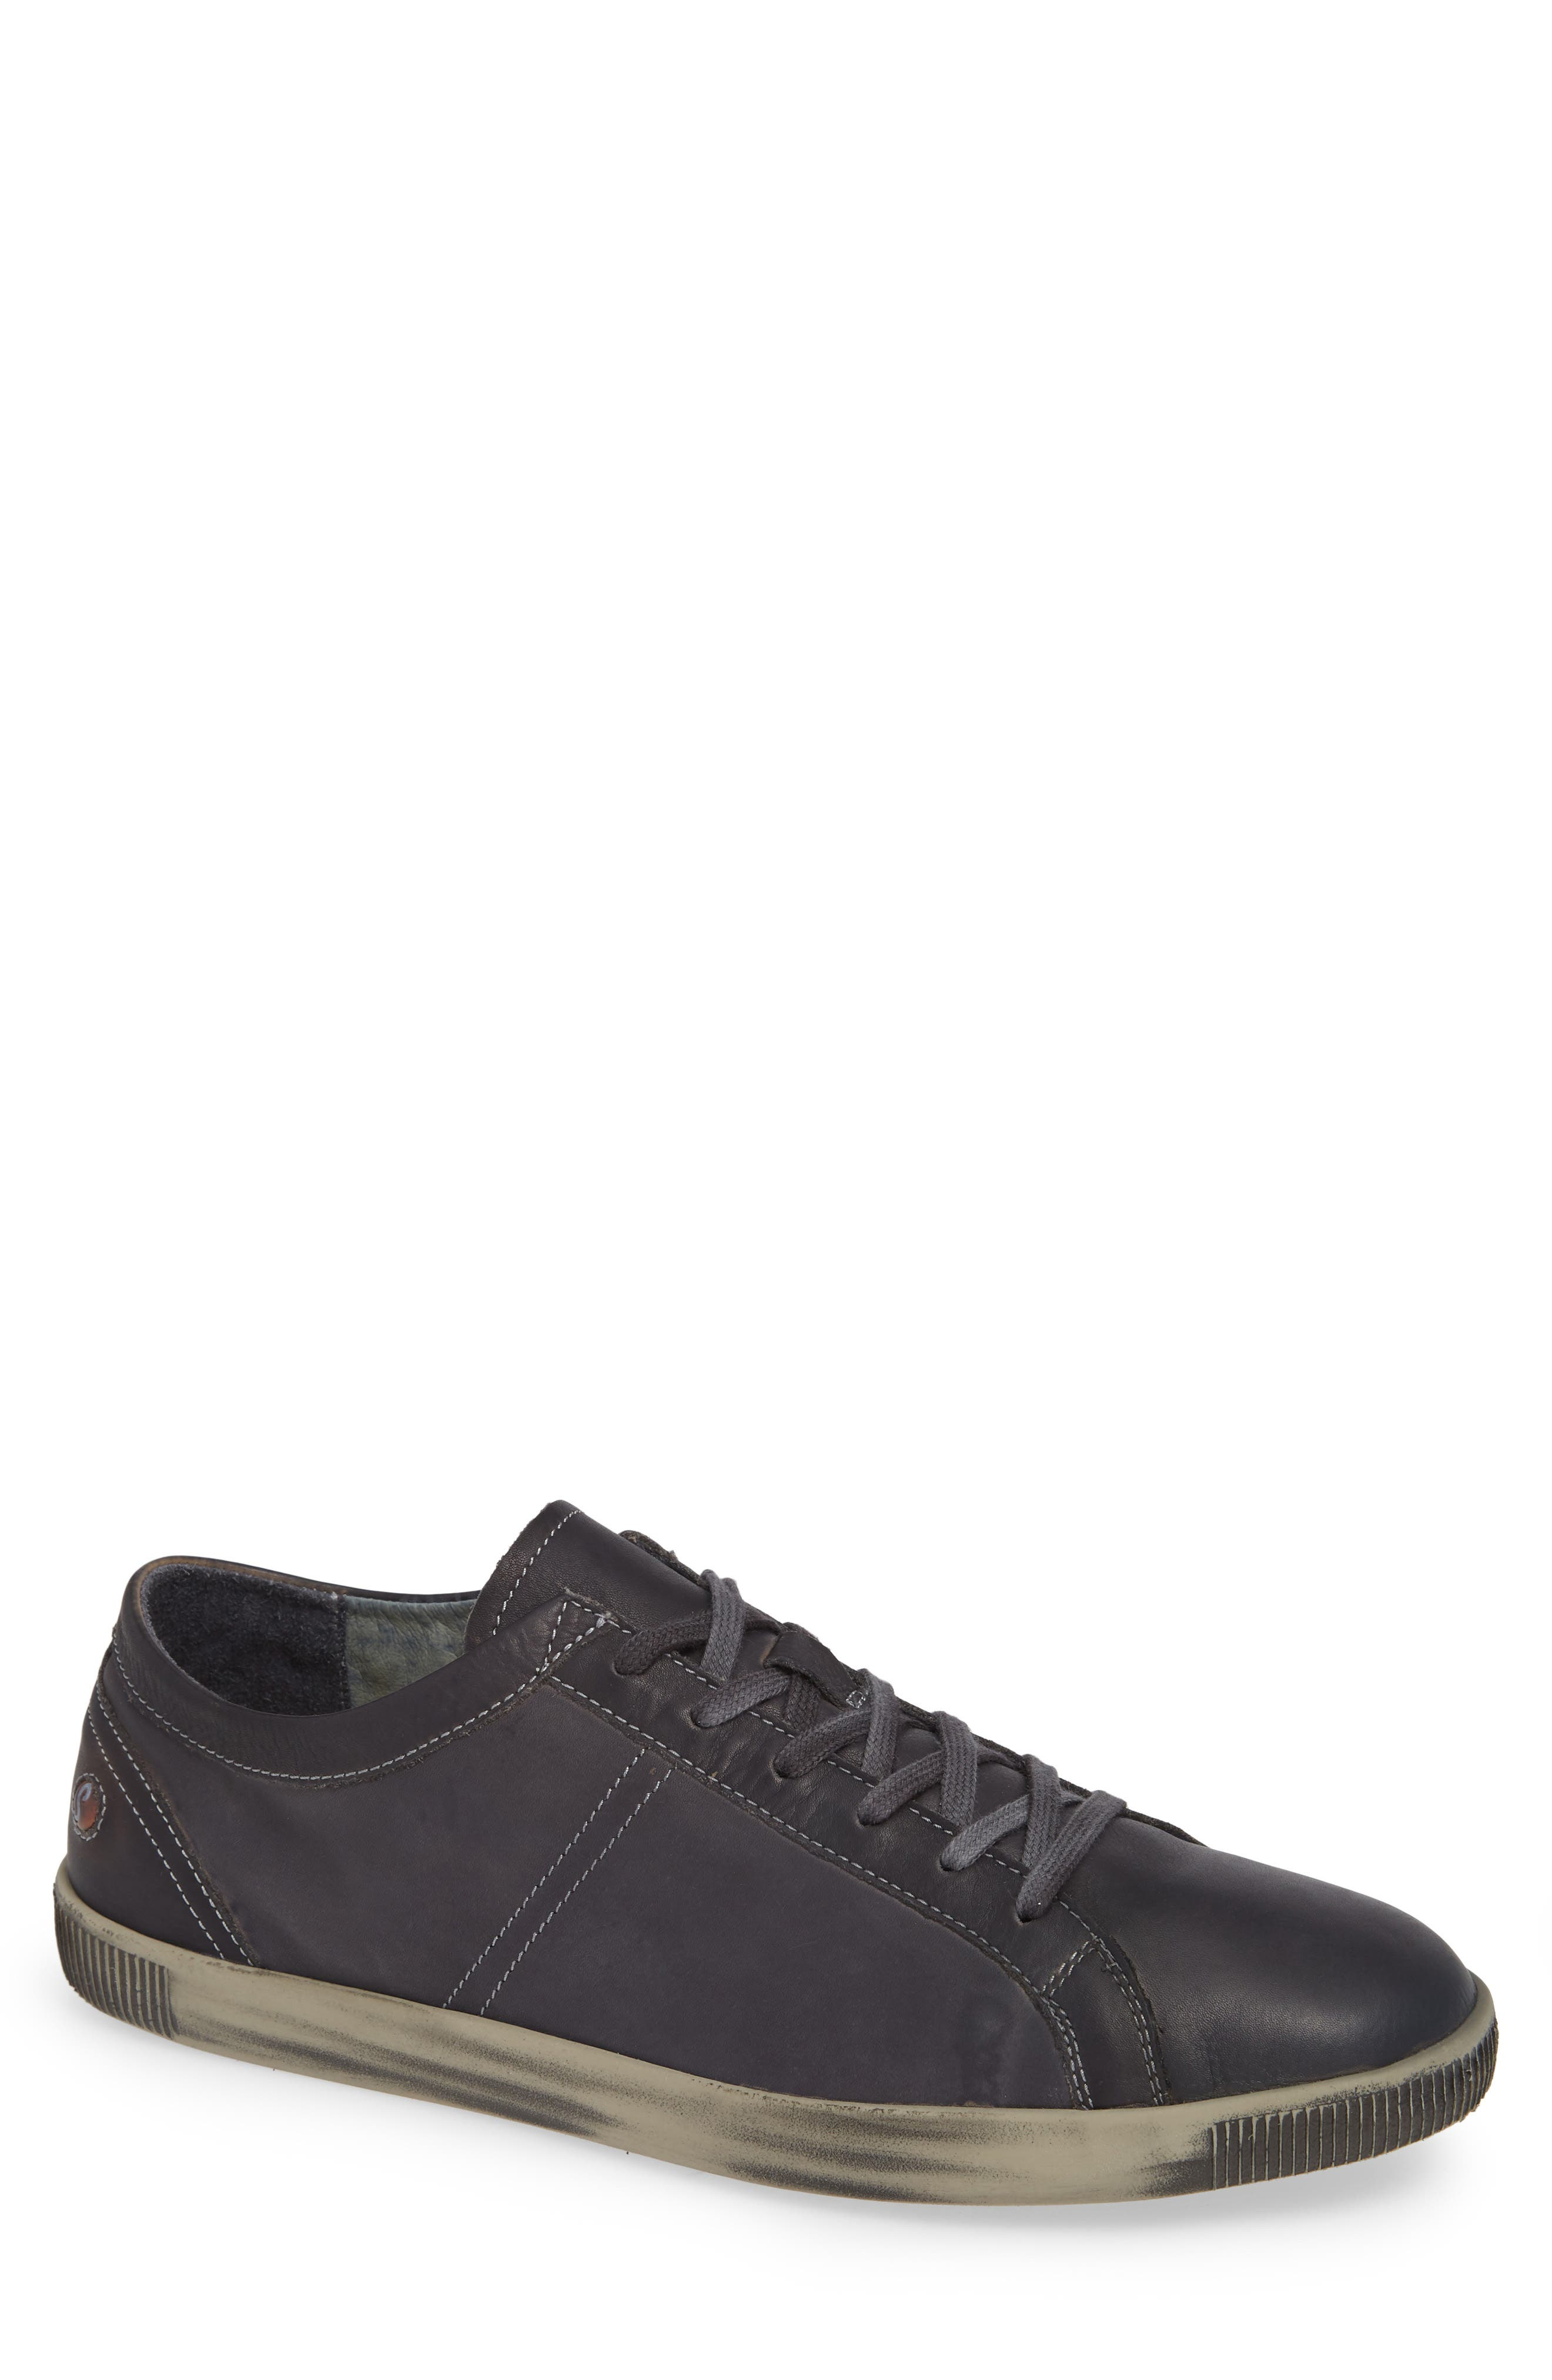 Tom Sneaker,                             Main thumbnail 1, color,                             ANTHRACITE WASHED LEATHER